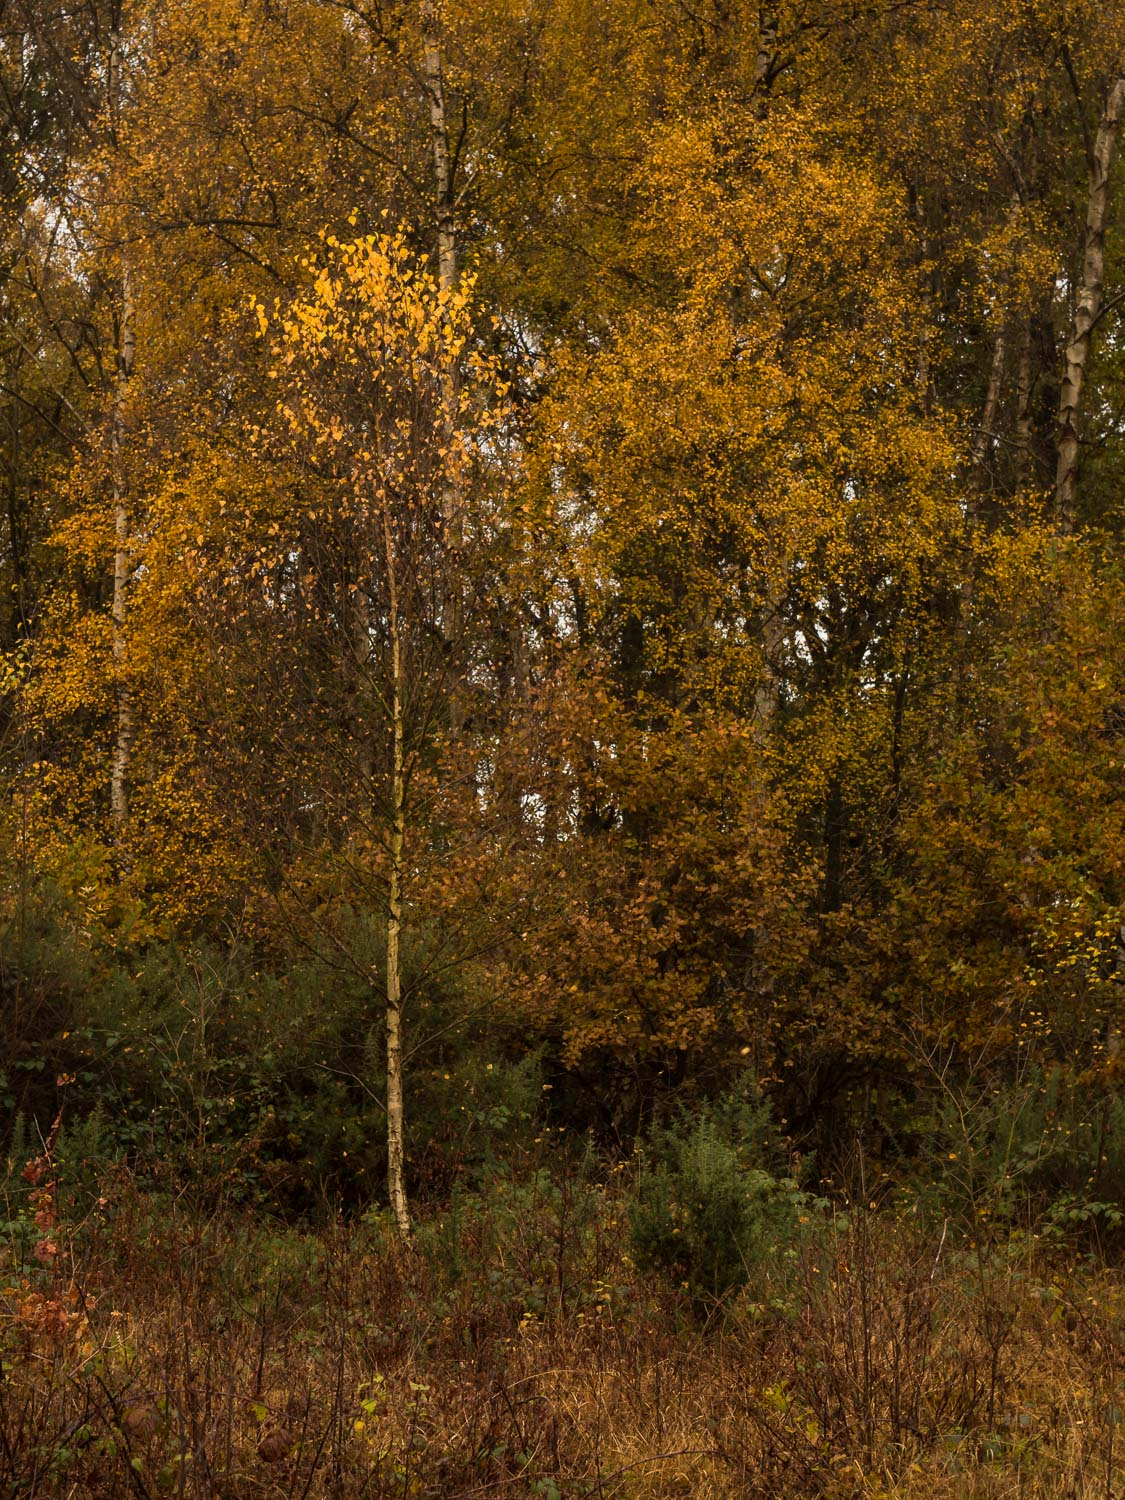 A storm-swept silver birch sapling looses its leaves under leaden skies